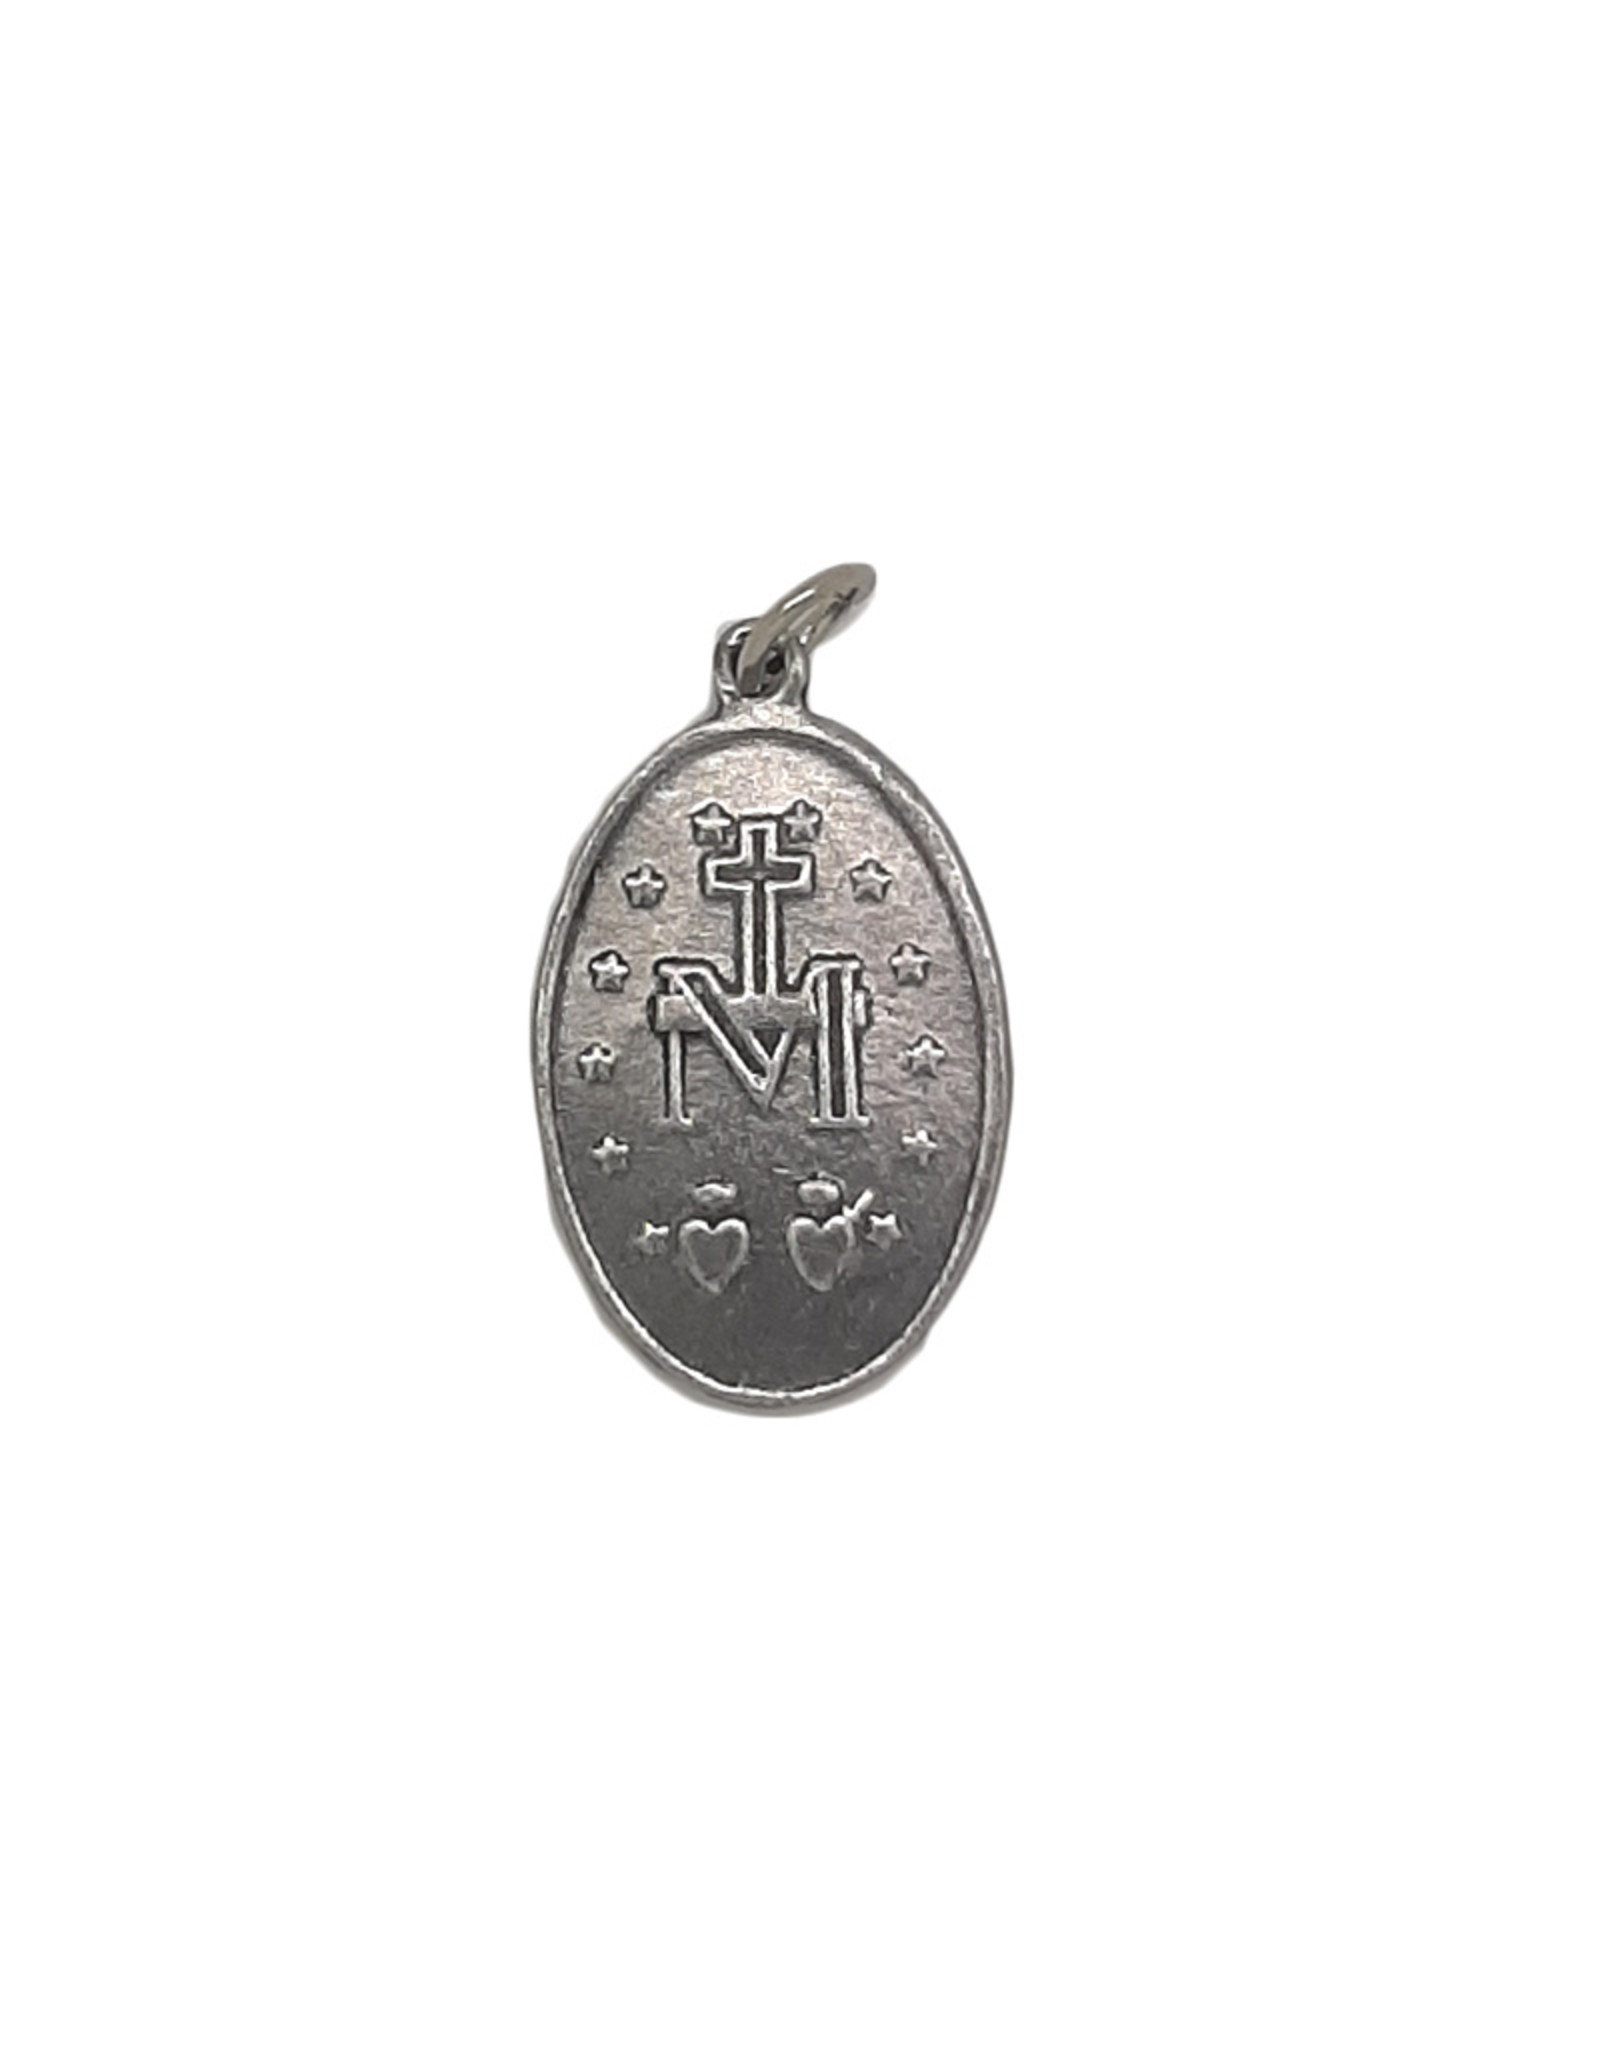 Silver colored Miraculous Medal in French